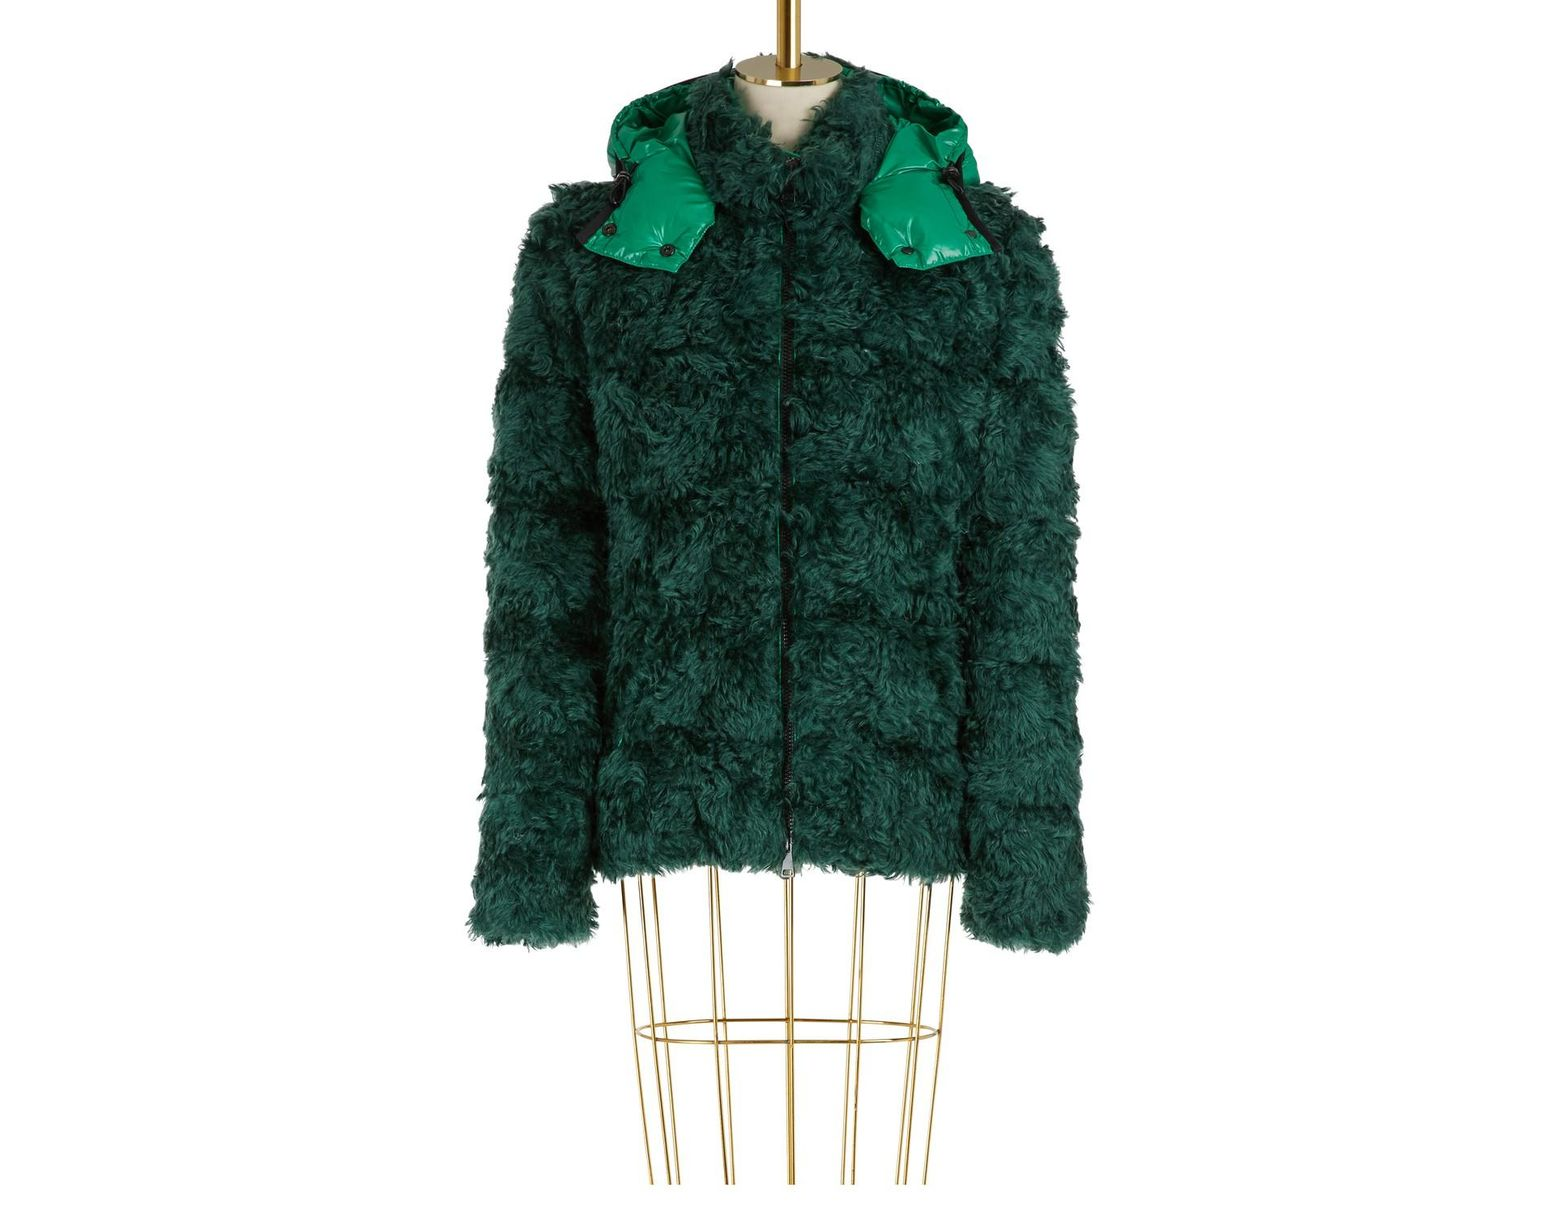 30553a79a Moncler Badyp Mohair Jacket in Green - Lyst